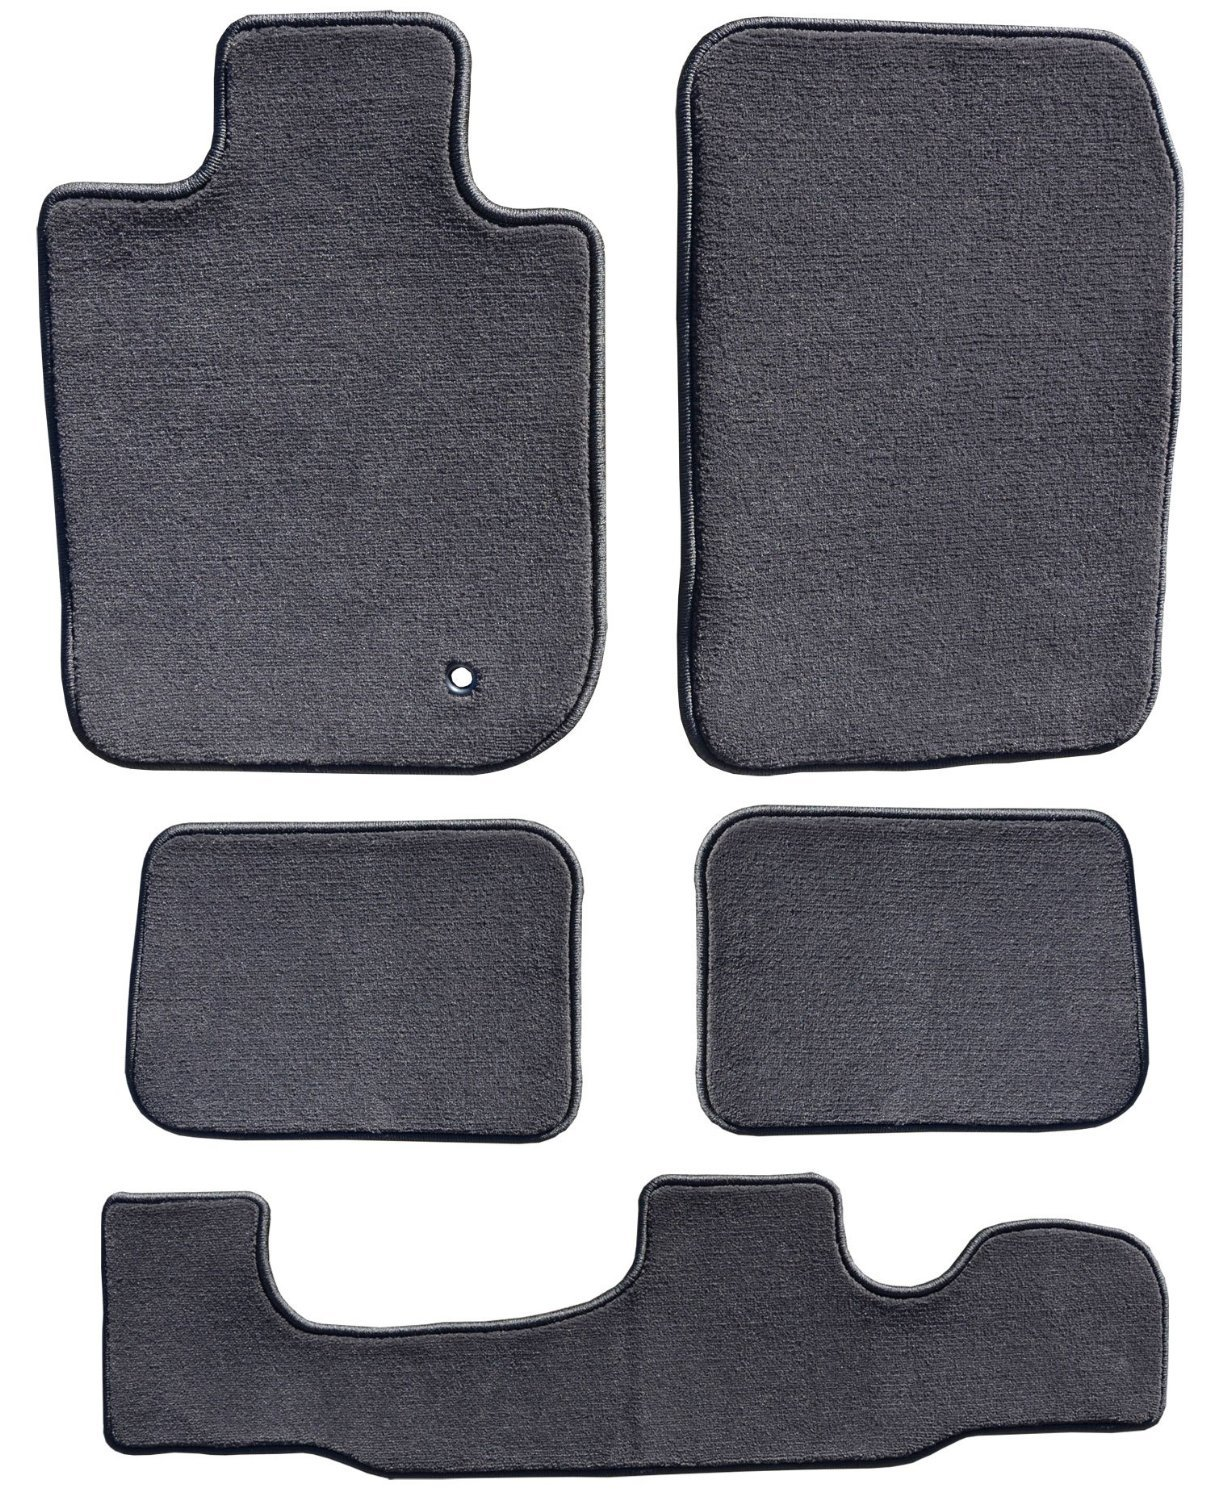 Passenger 2013 2016 Chrysler Town /& Country Charcoal Driver GGBAILEY D60297-LSA-CC-CHAR Custom Fit Car Mats for 2012 4 Piece Floor 2015 2nd /& 3rd Row 2014